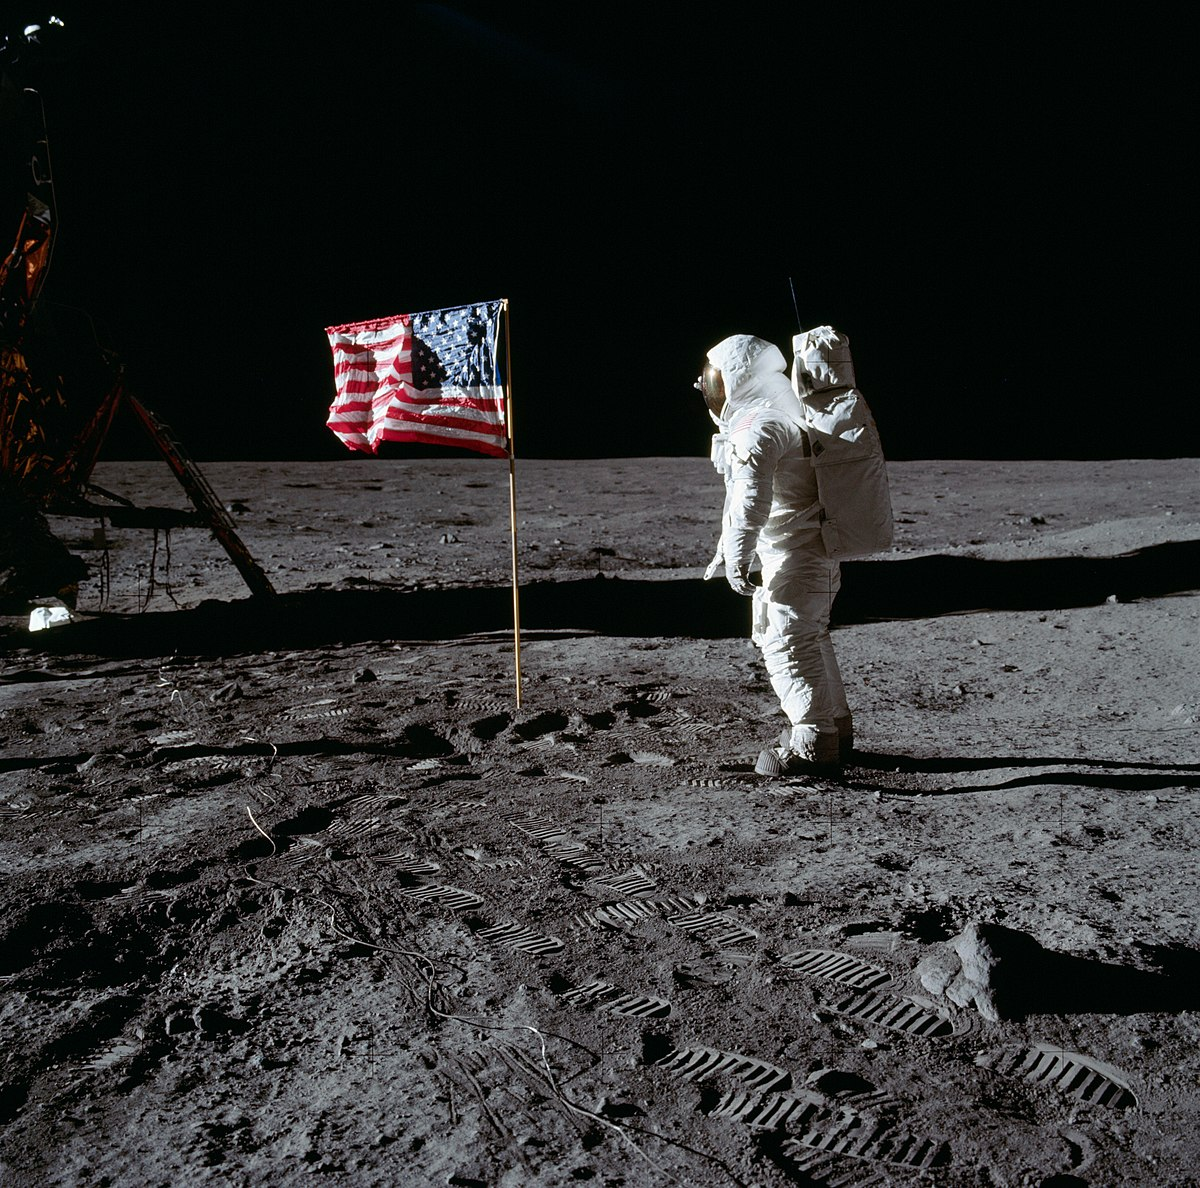 apollo missions by date - photo #2